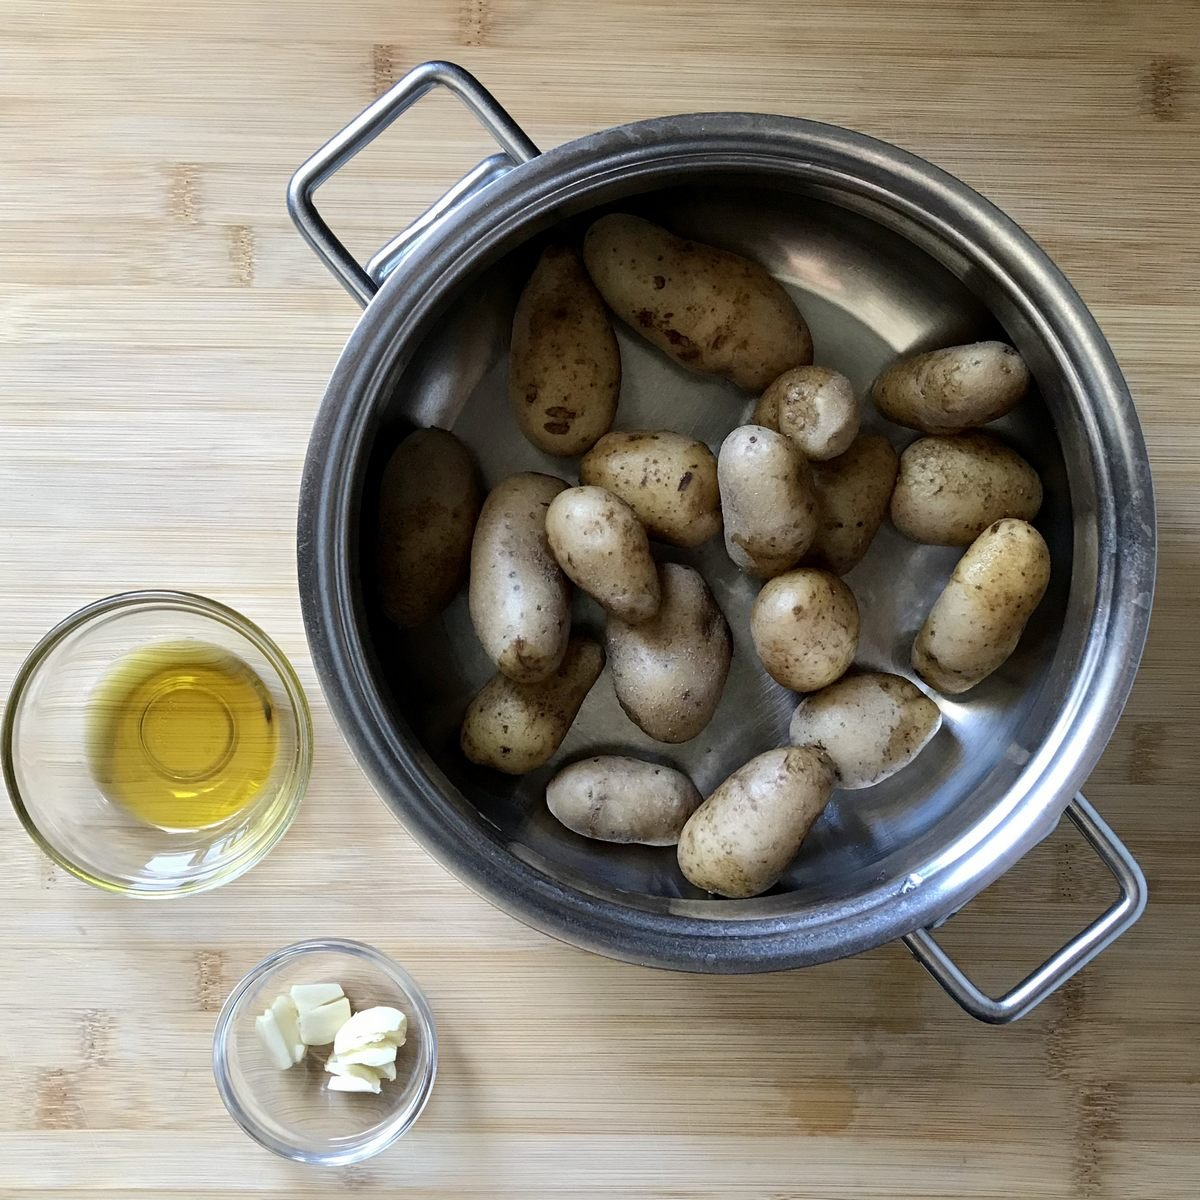 Boiled and drained fingerling potatoes in a pot, next to olive oil and garlic.